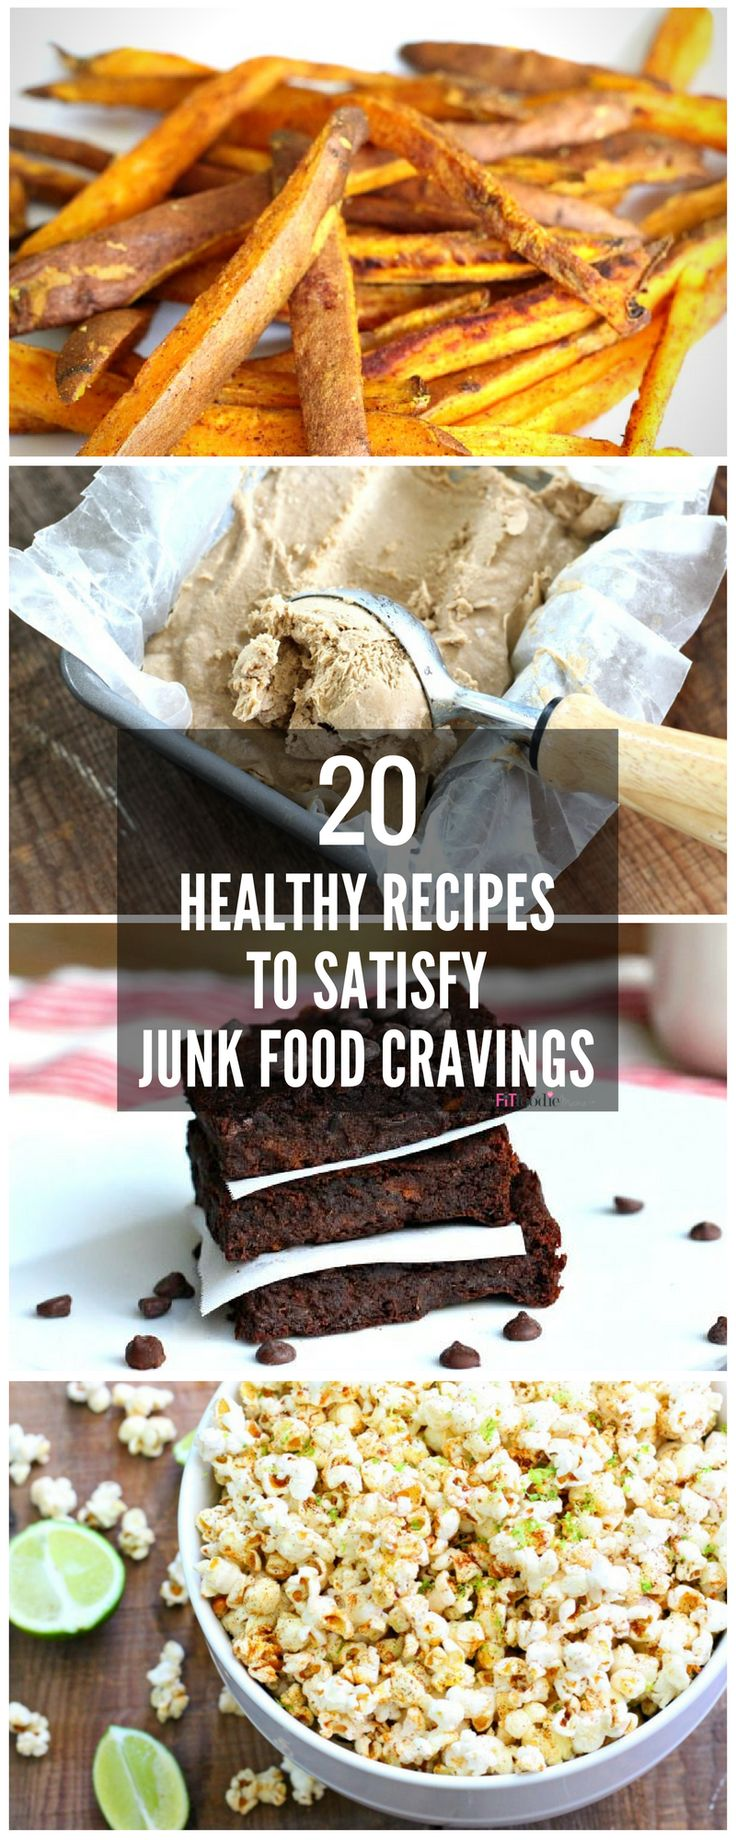 20 Healthy Gluten Free and Dairy Free Healthy Recipes to Satisfy Your Junk Food Cravings